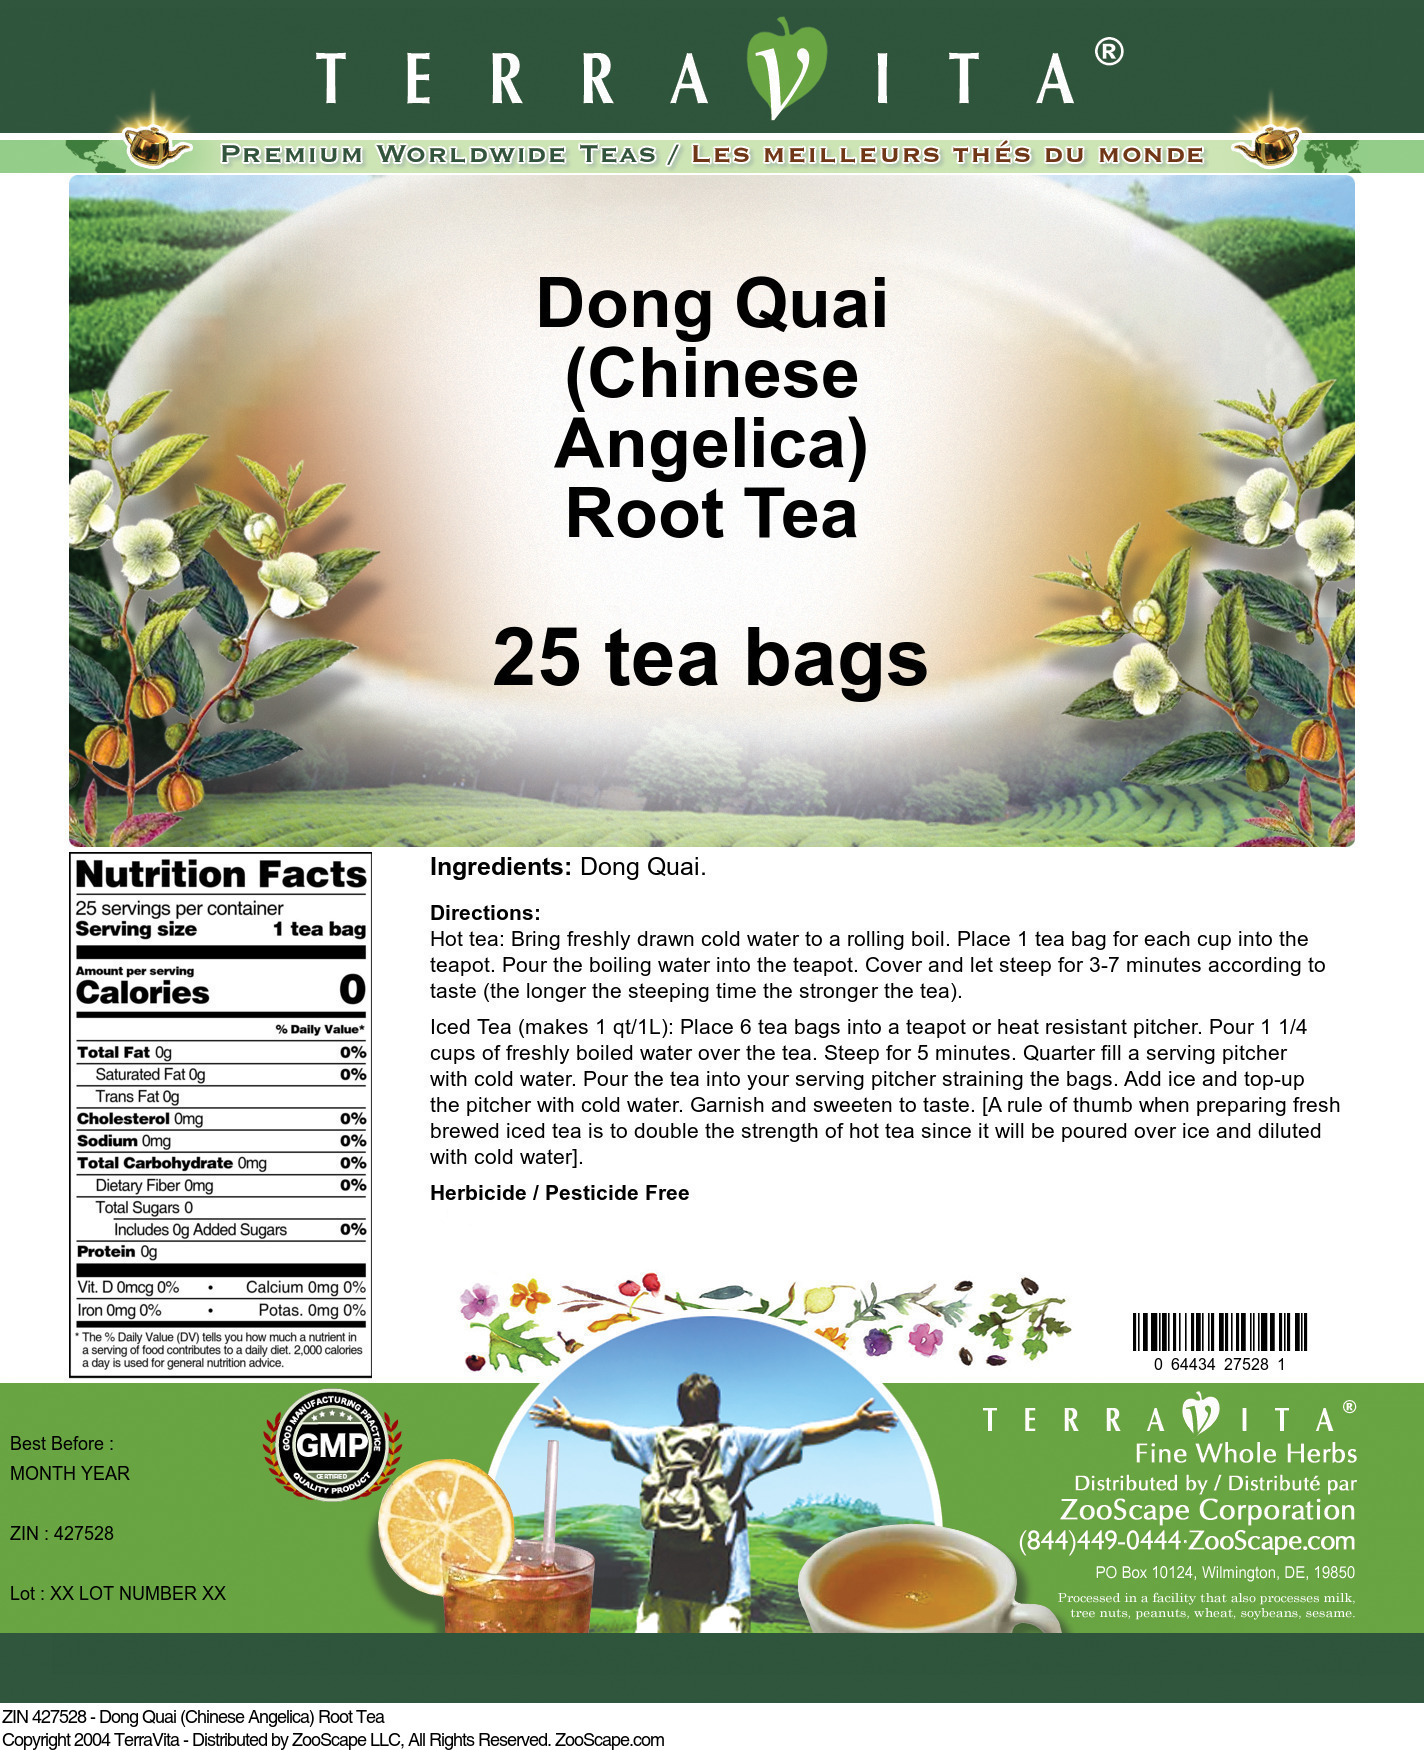 Dong Quai (Chinese Angelica) Root Tea